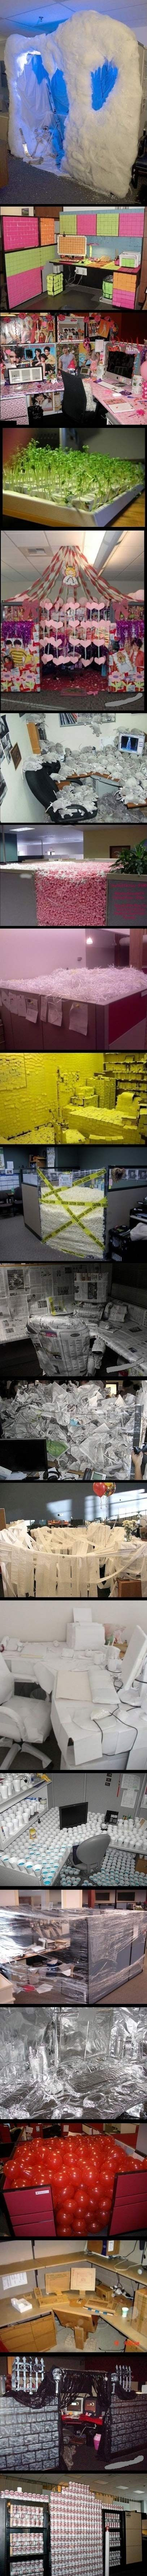 A collection of office pranks�